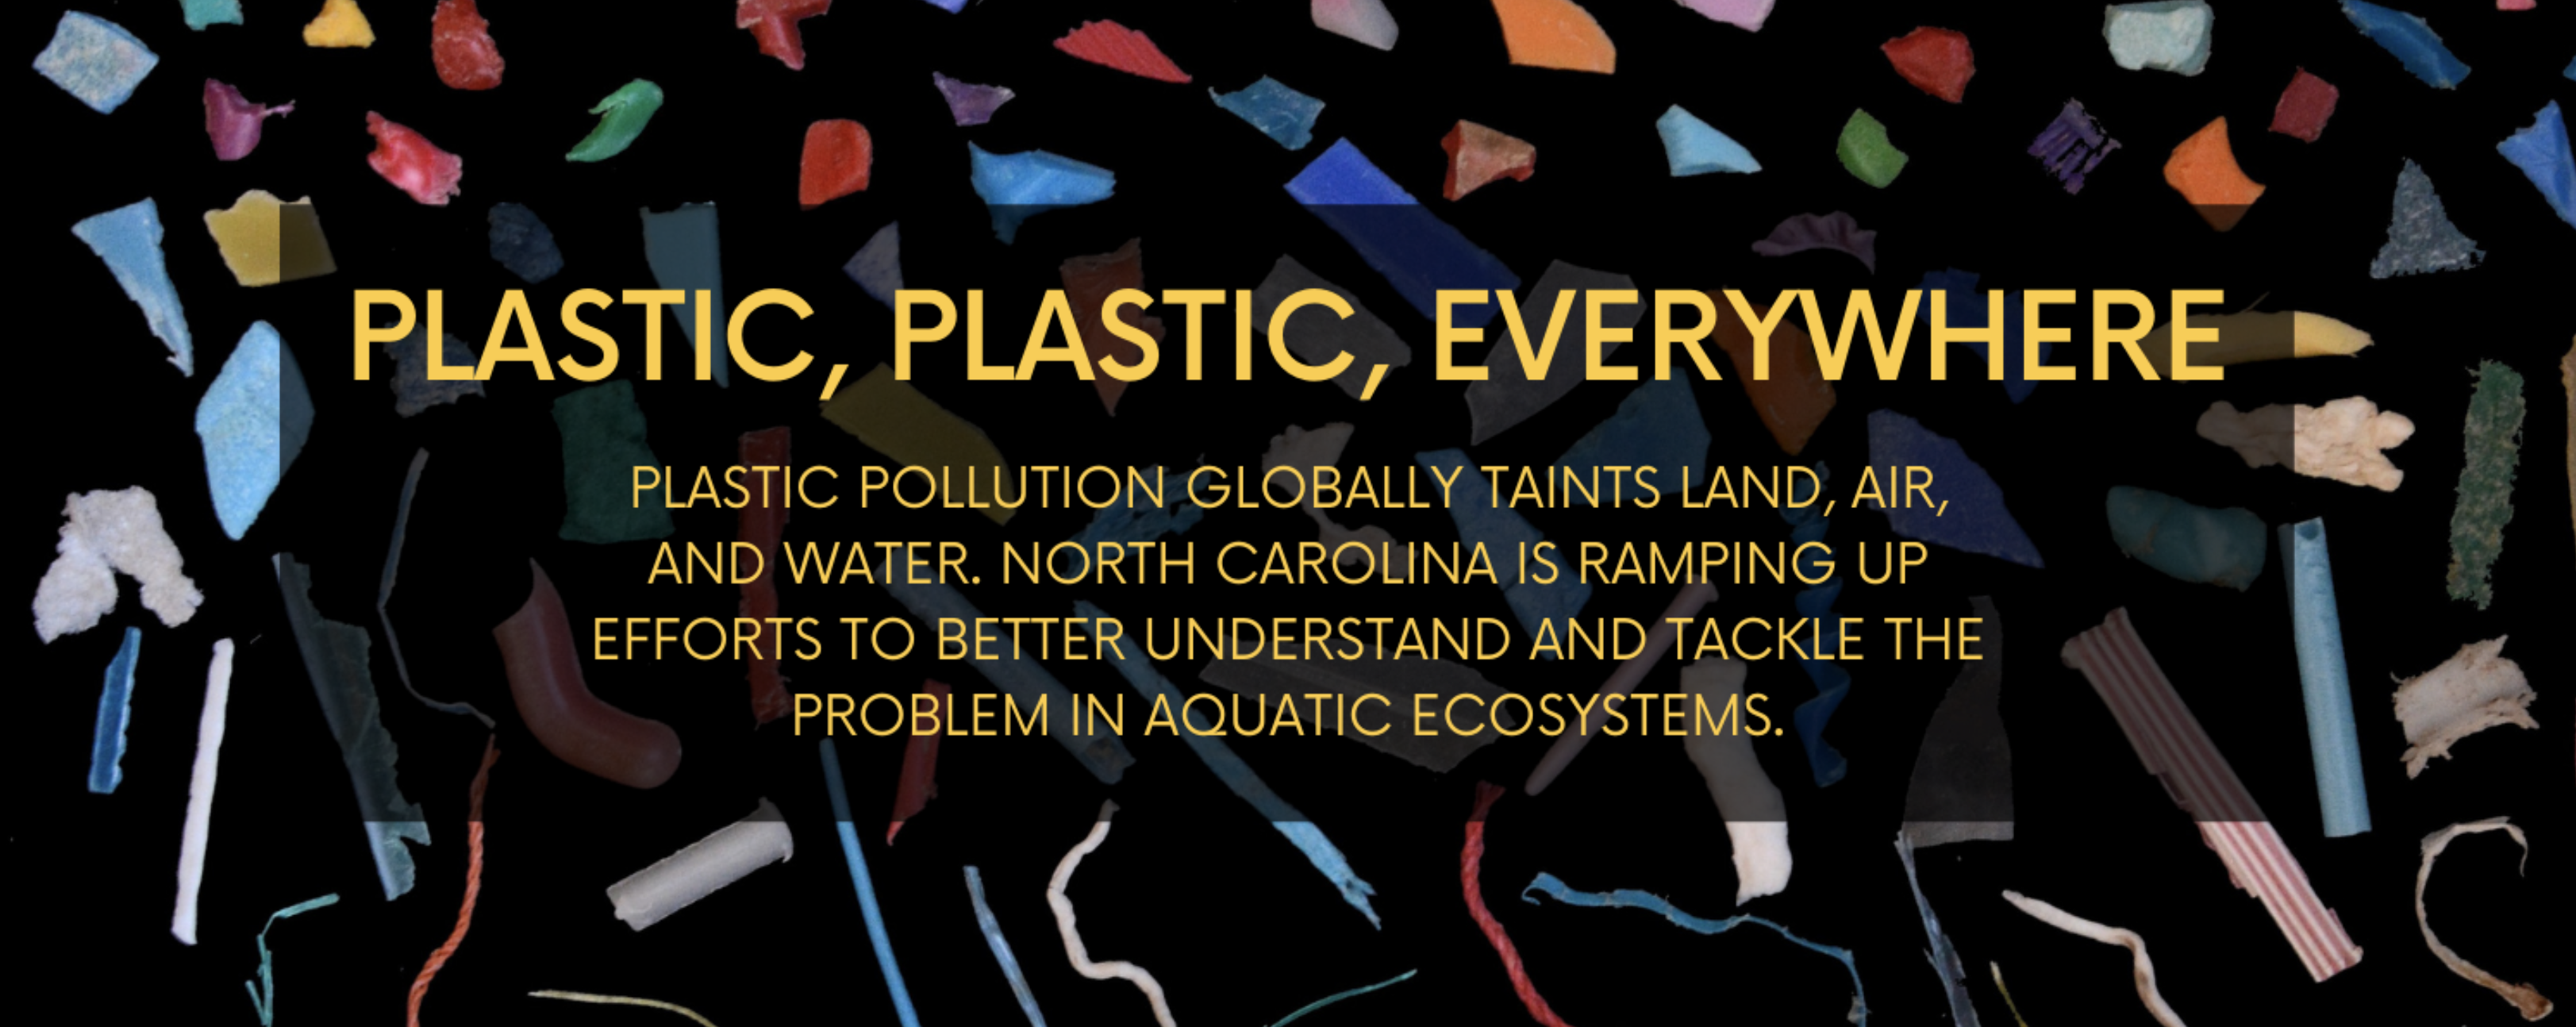 Plastic pollution comes in a continuum of sizes and shapes. Image by Merel Kooi/ Wageningen University & Research.